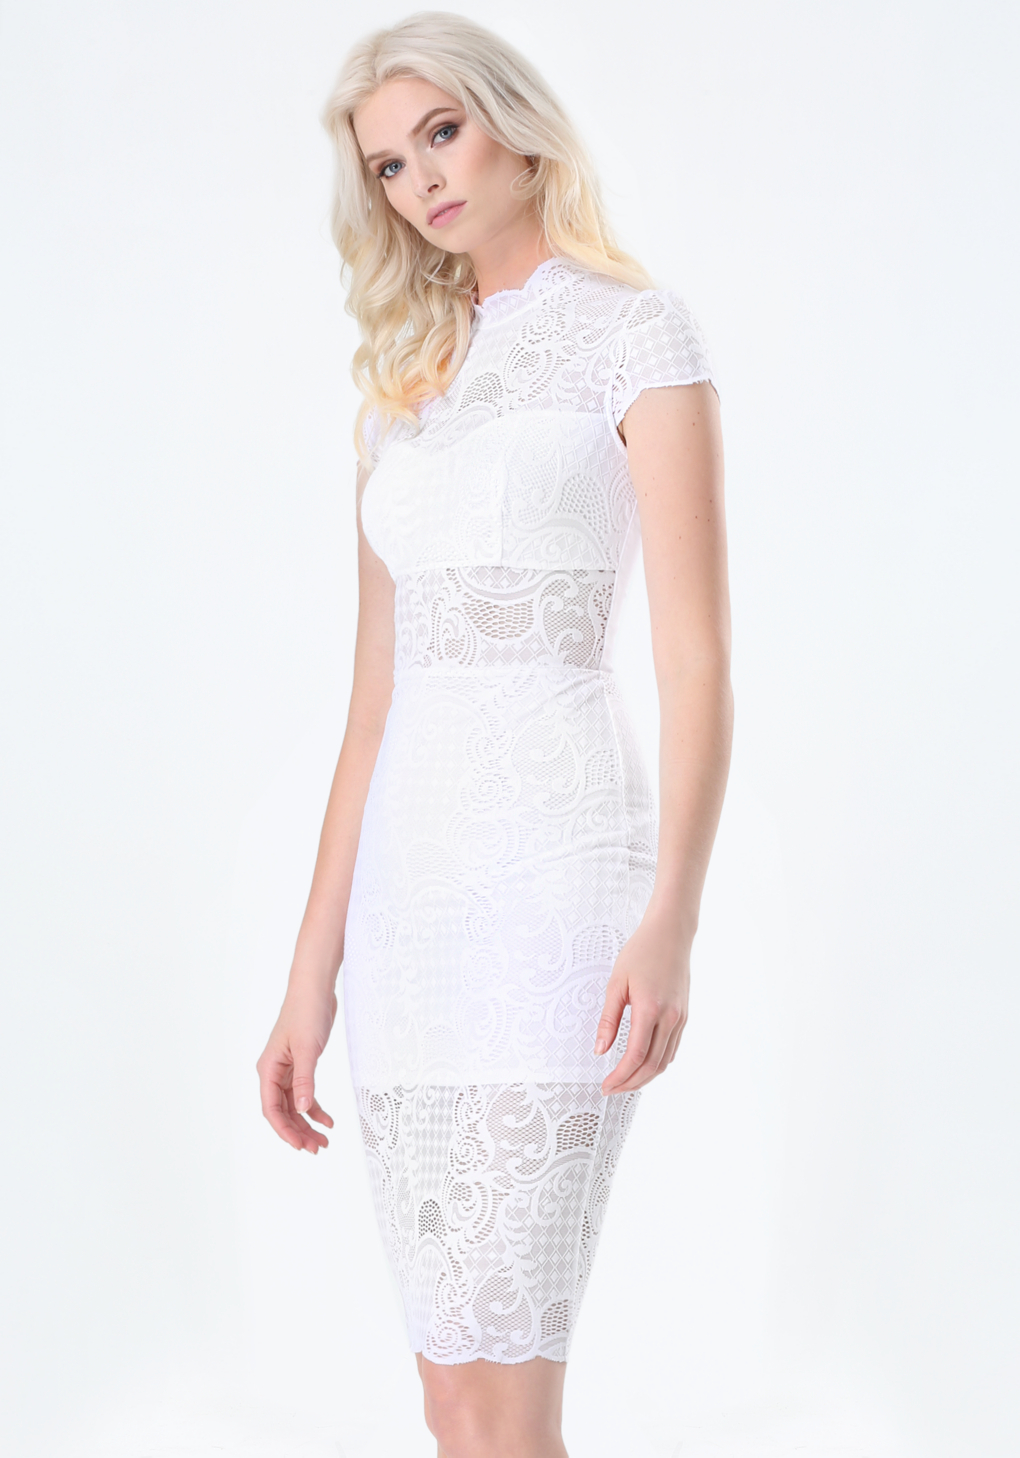 White dresses with lace overlay